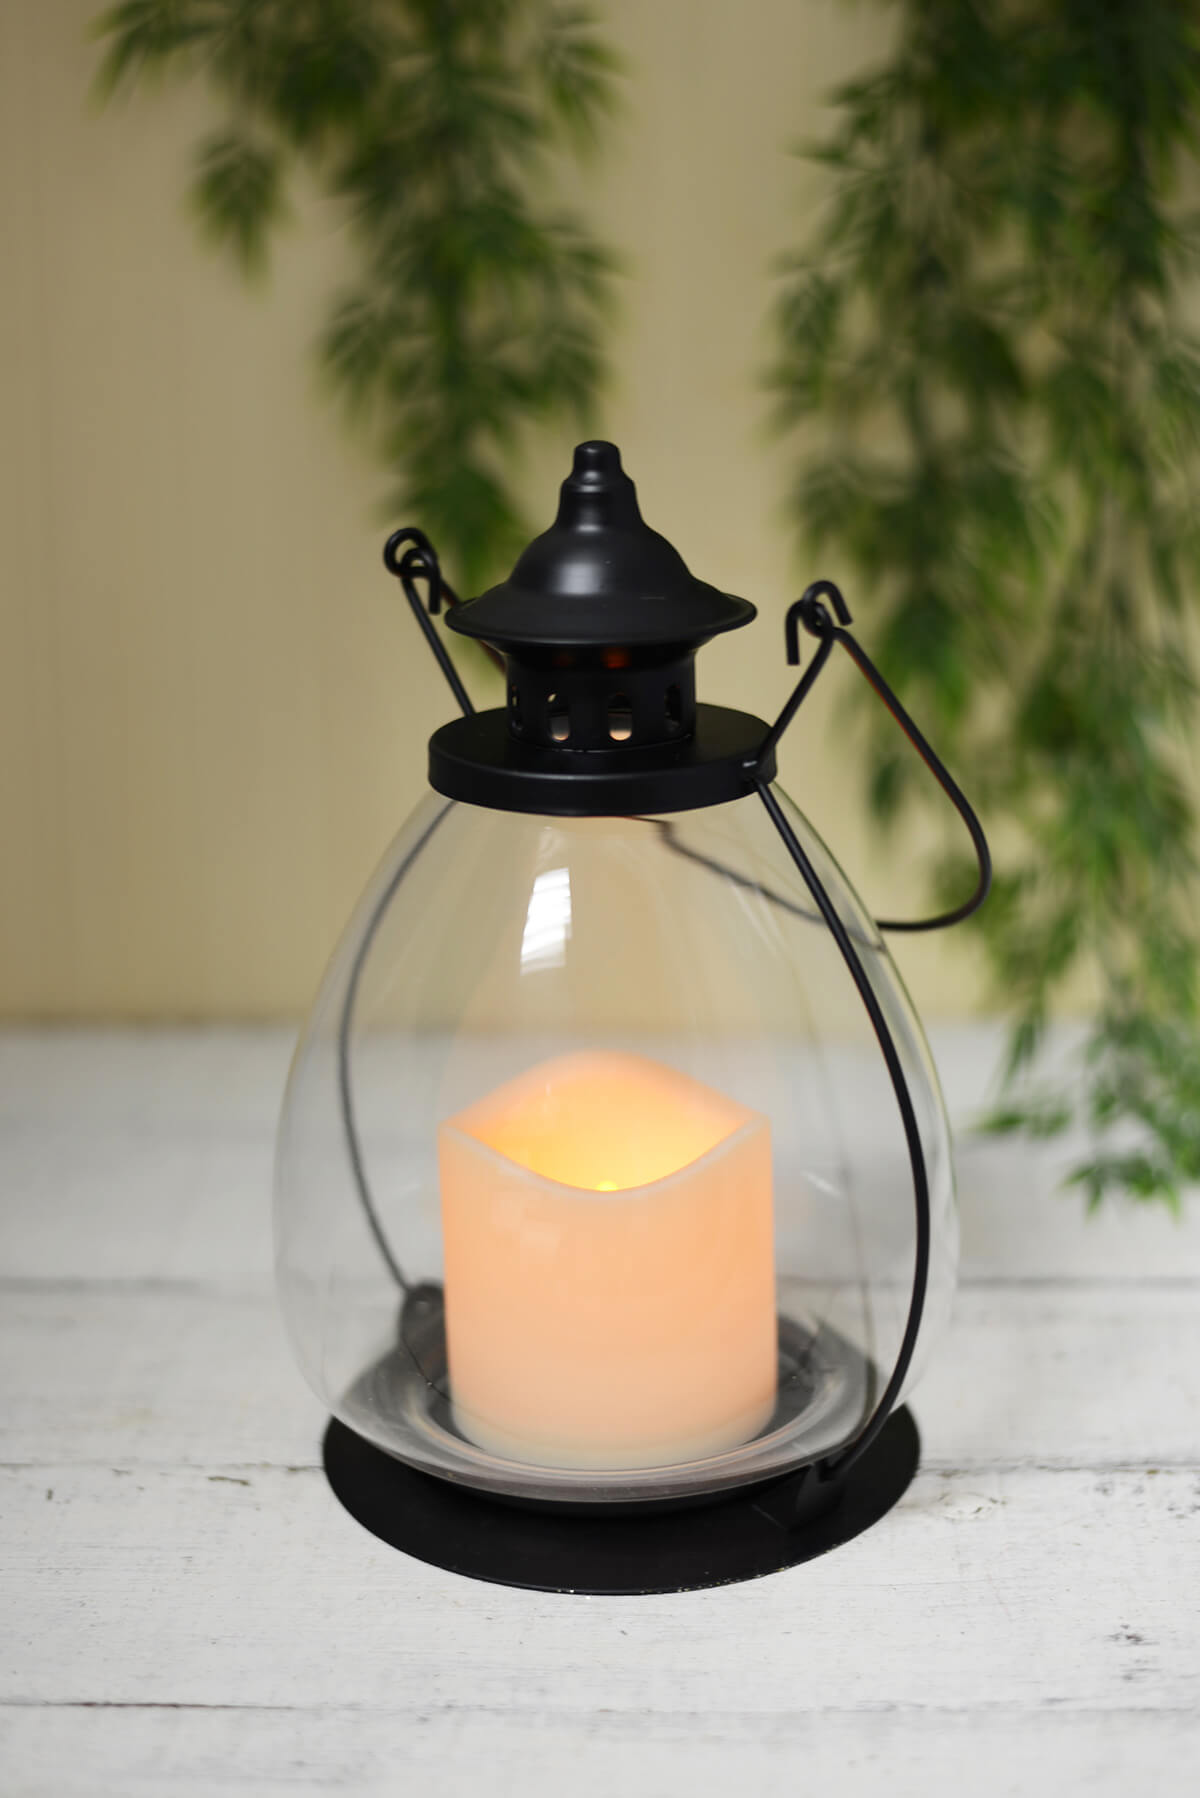 Small solar lights for crafts - School House Battery Operated Candle Lantern Timer 9 Metal Glass